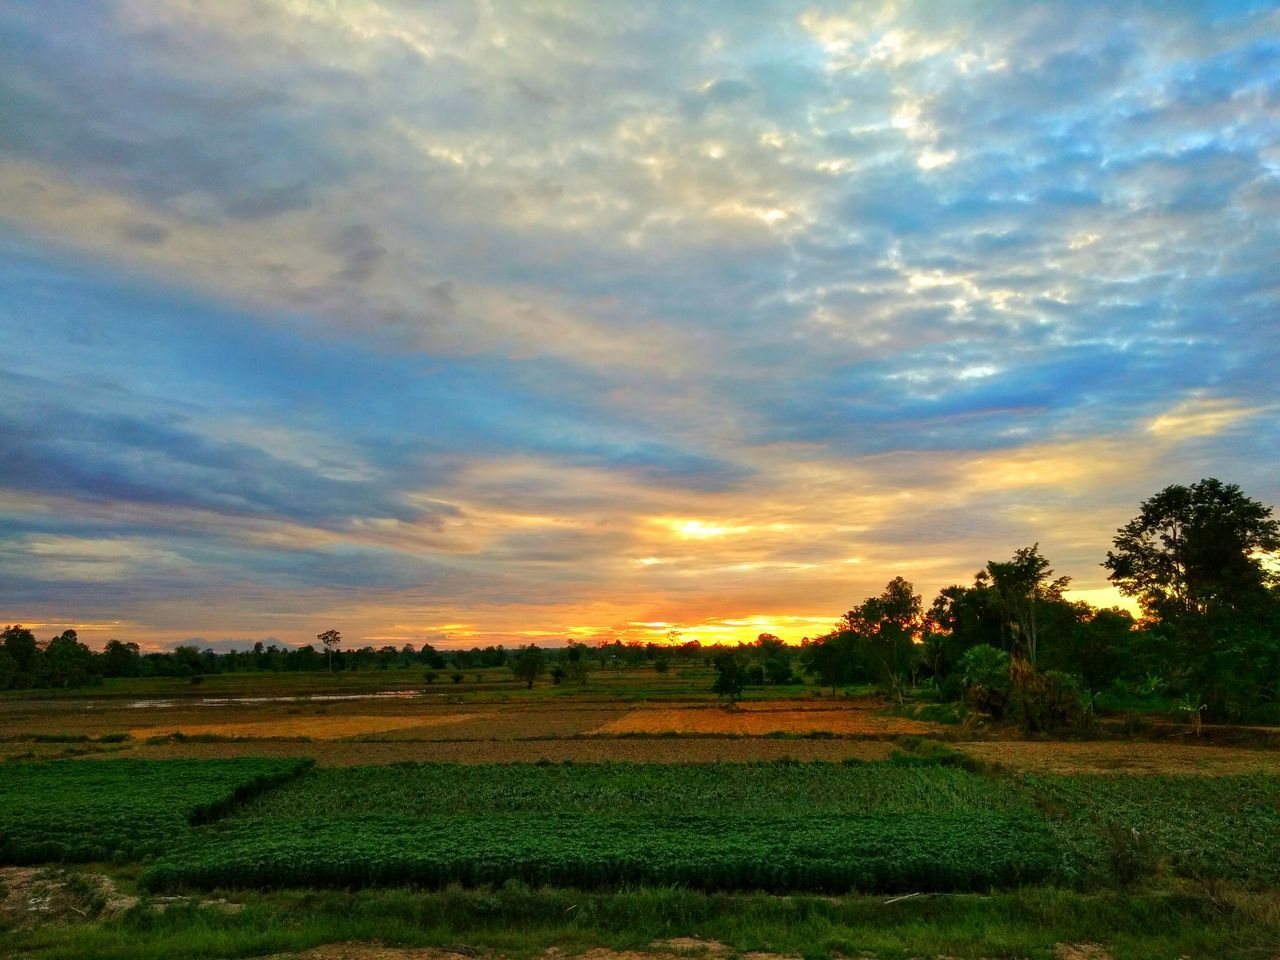 field, tranquility, landscape, nature, beauty in nature, agriculture, tranquil scene, scenics, cloud - sky, sky, tree, sunset, no people, rural scene, growth, grass, outdoors, day